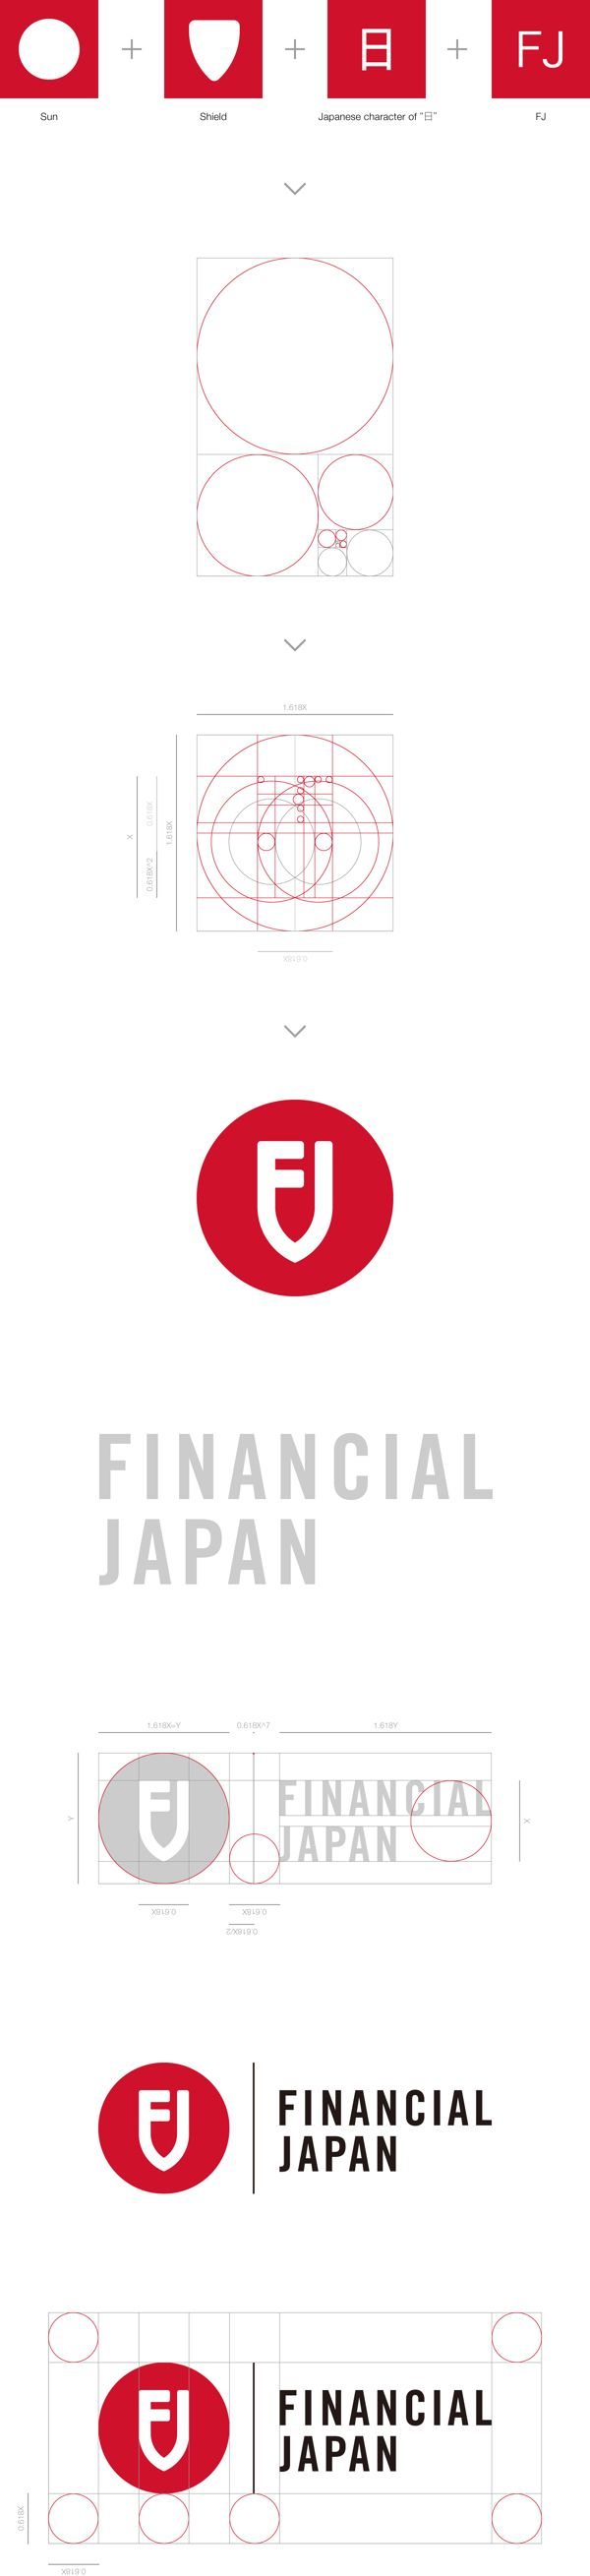 Financial Japan - Logo Redesign by hiromi maeo, via Behance